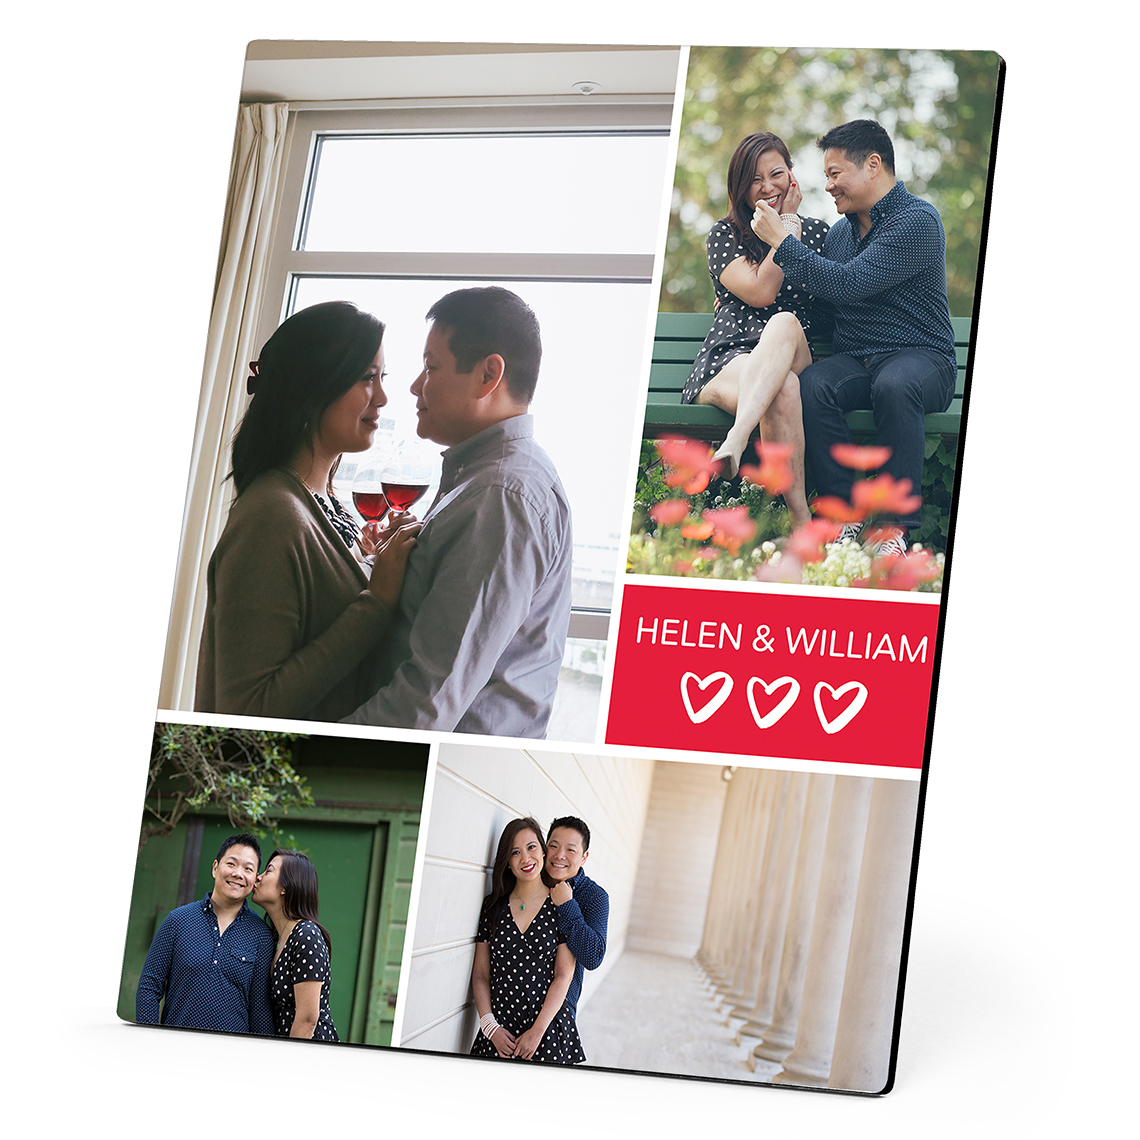 Photo Panel, Tabletop - Photo Panel, Tabletop, 8x10 Photo Panel, Tabletop Home Décor